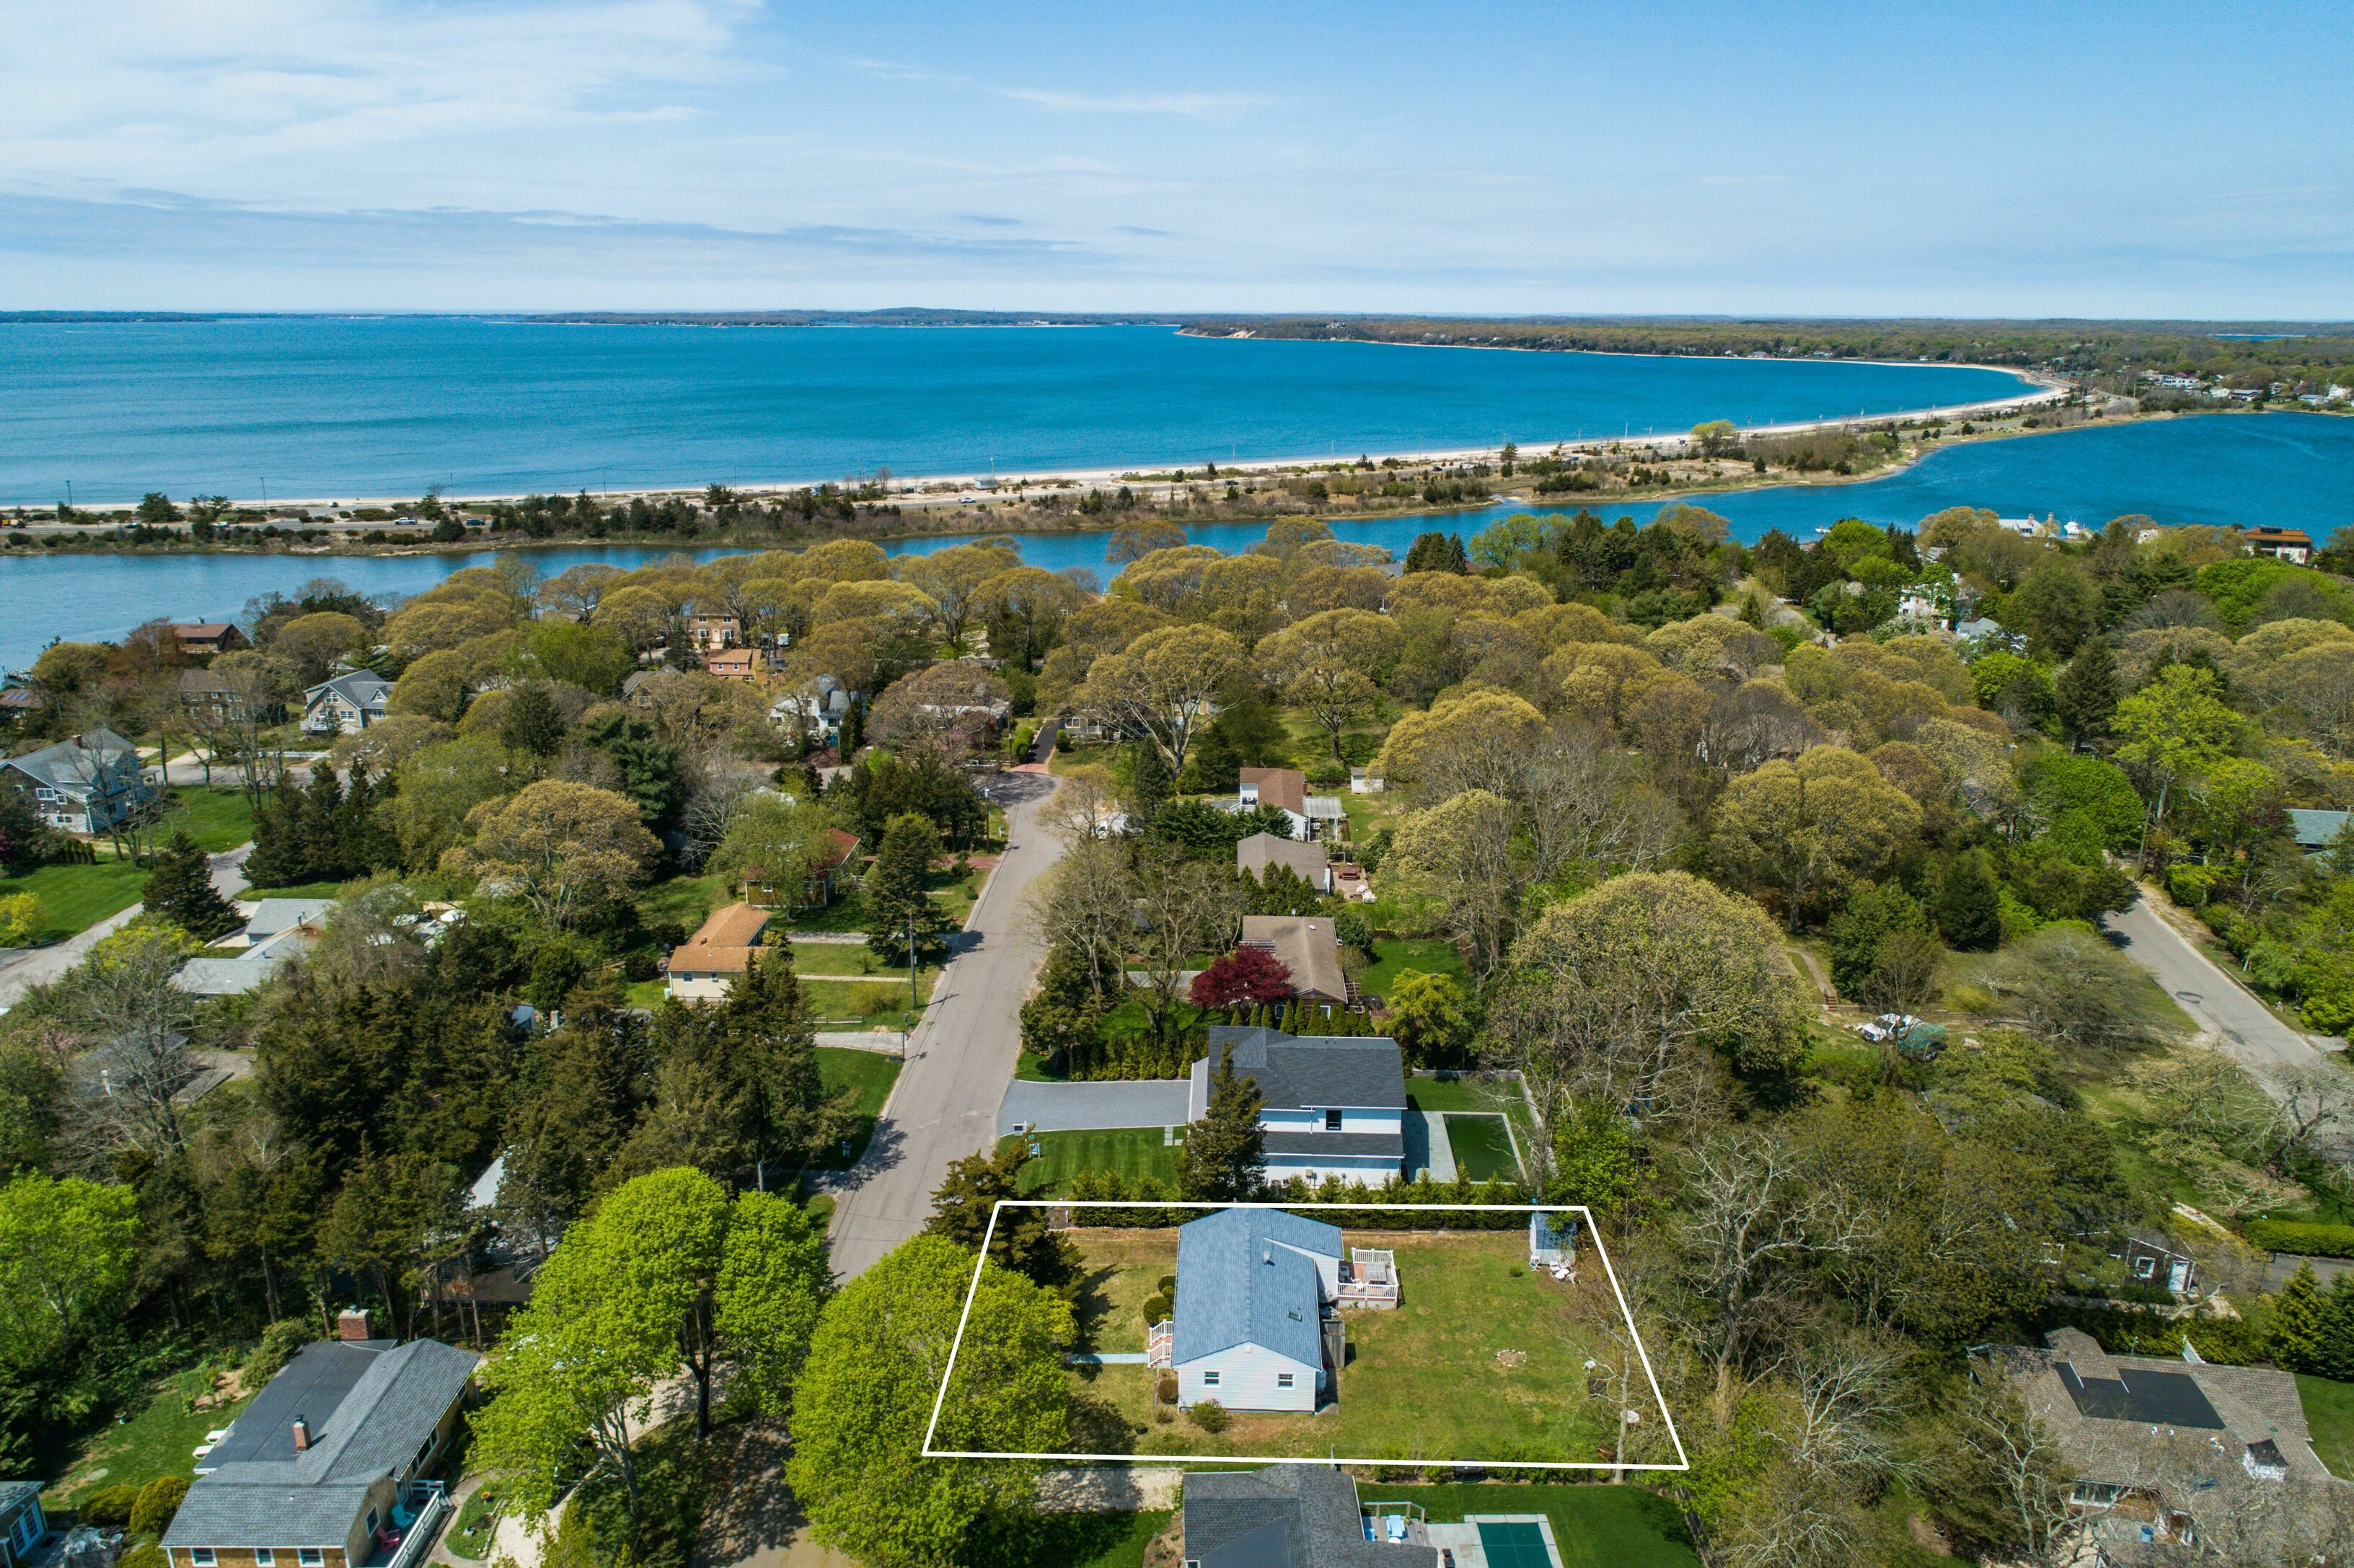 24 Parkway Dr - Sag Harbor, New York